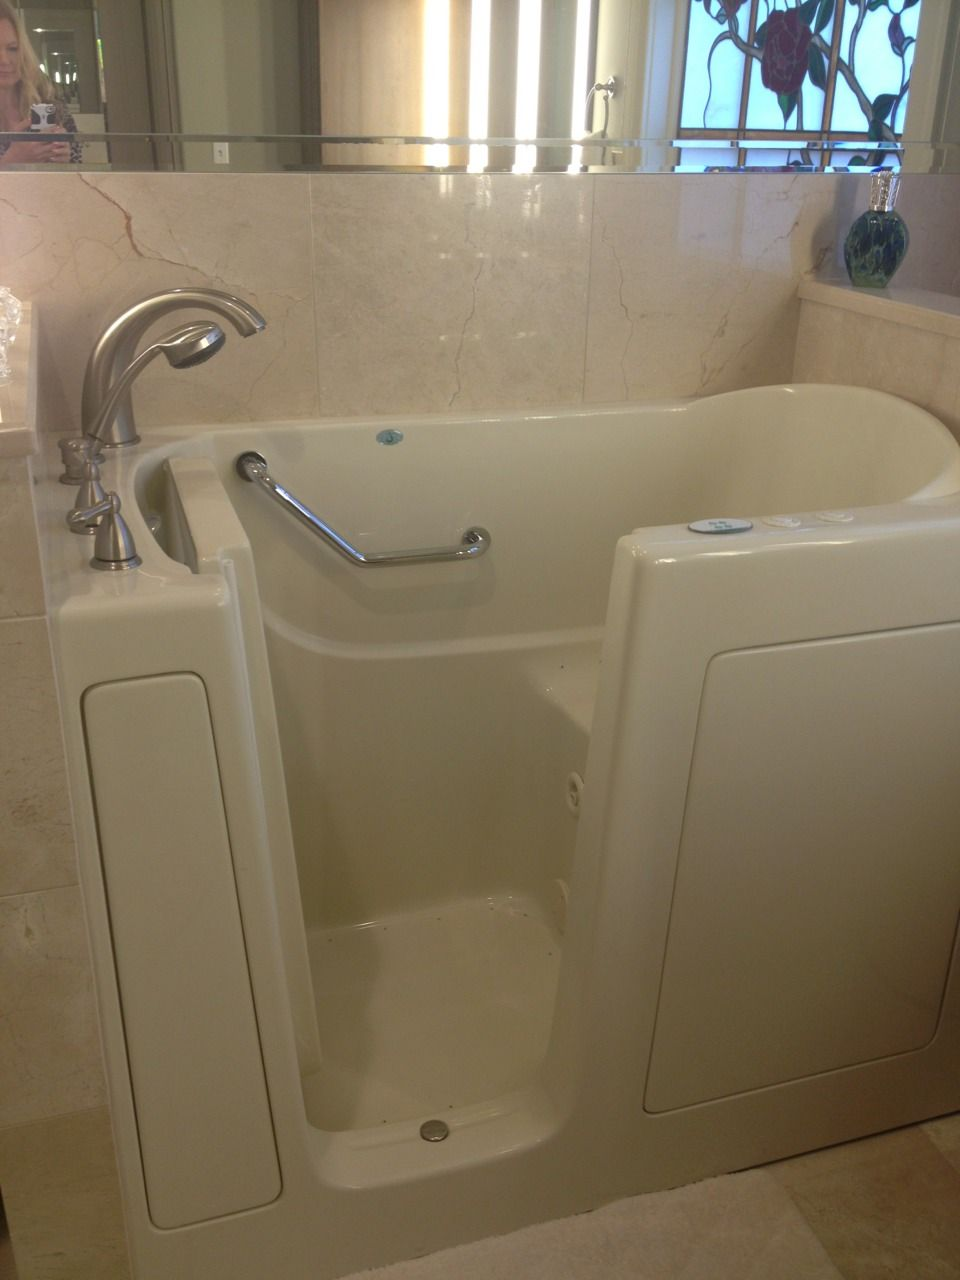 handicapped accessible tub installed to day - aging gracefully ...